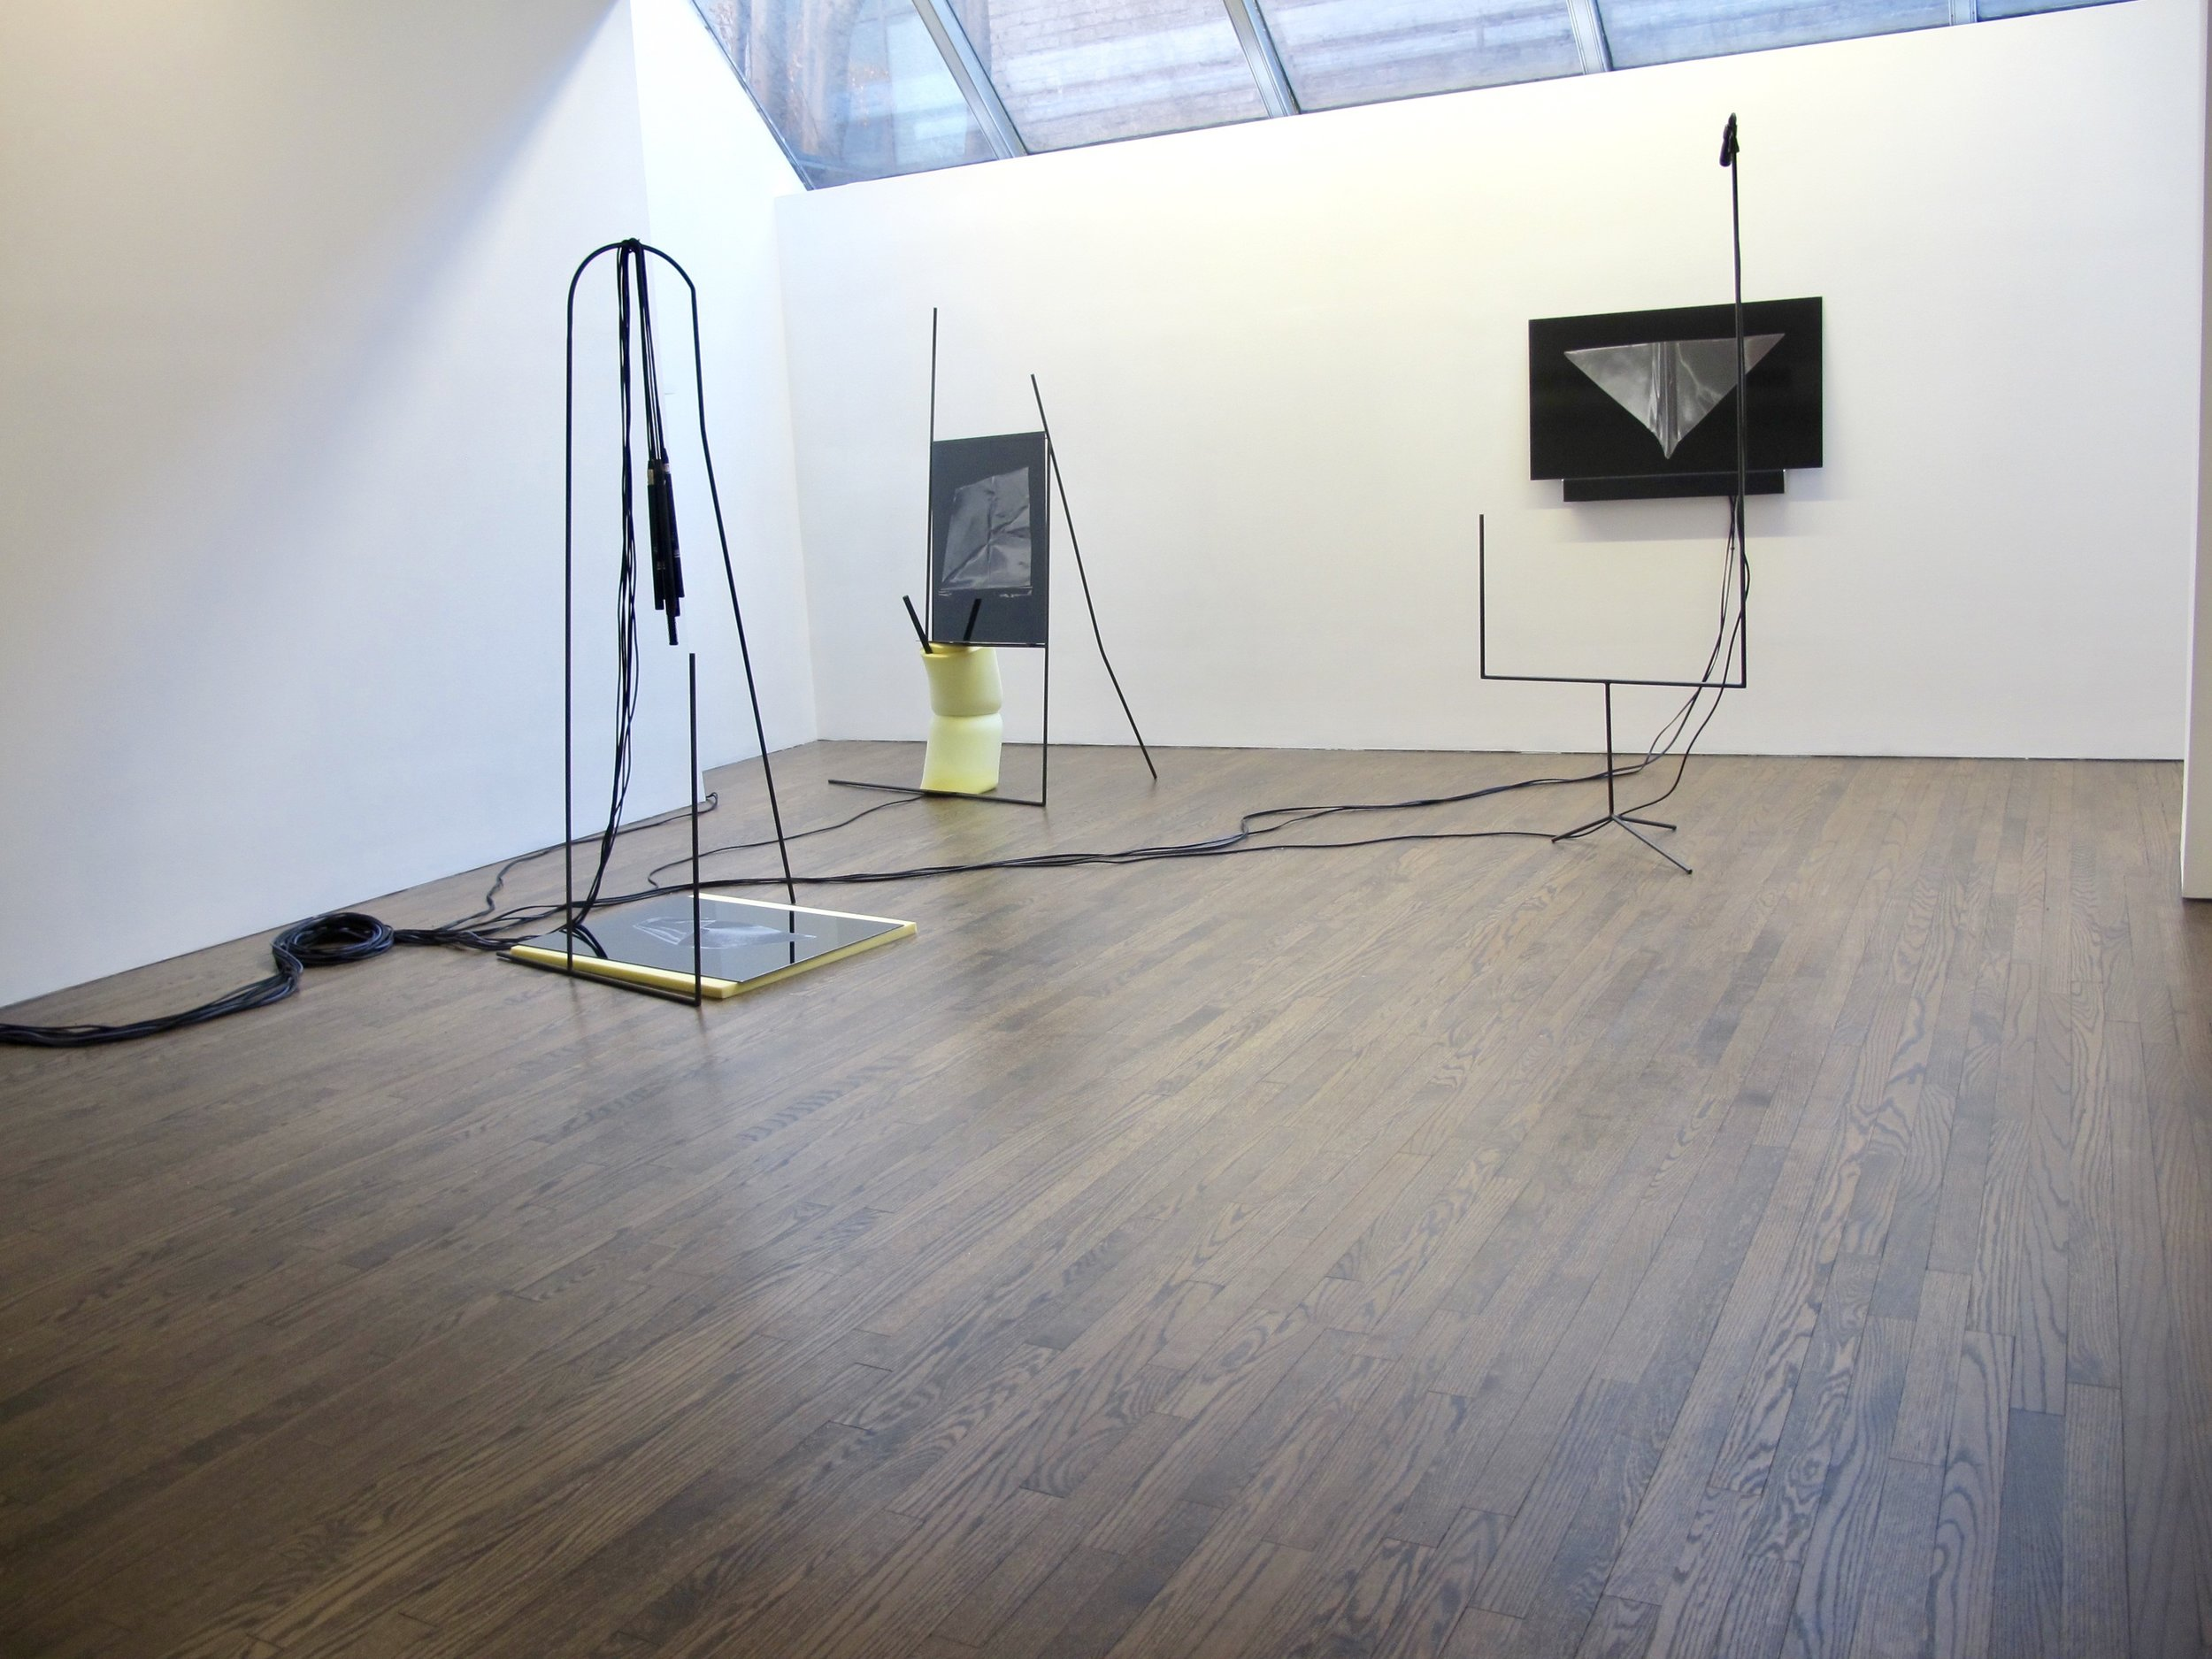 Music Stands, 2019,  s teel, UV prints on Dibond, foam, audio components, computer, sound. Installation view at The Artists Institute